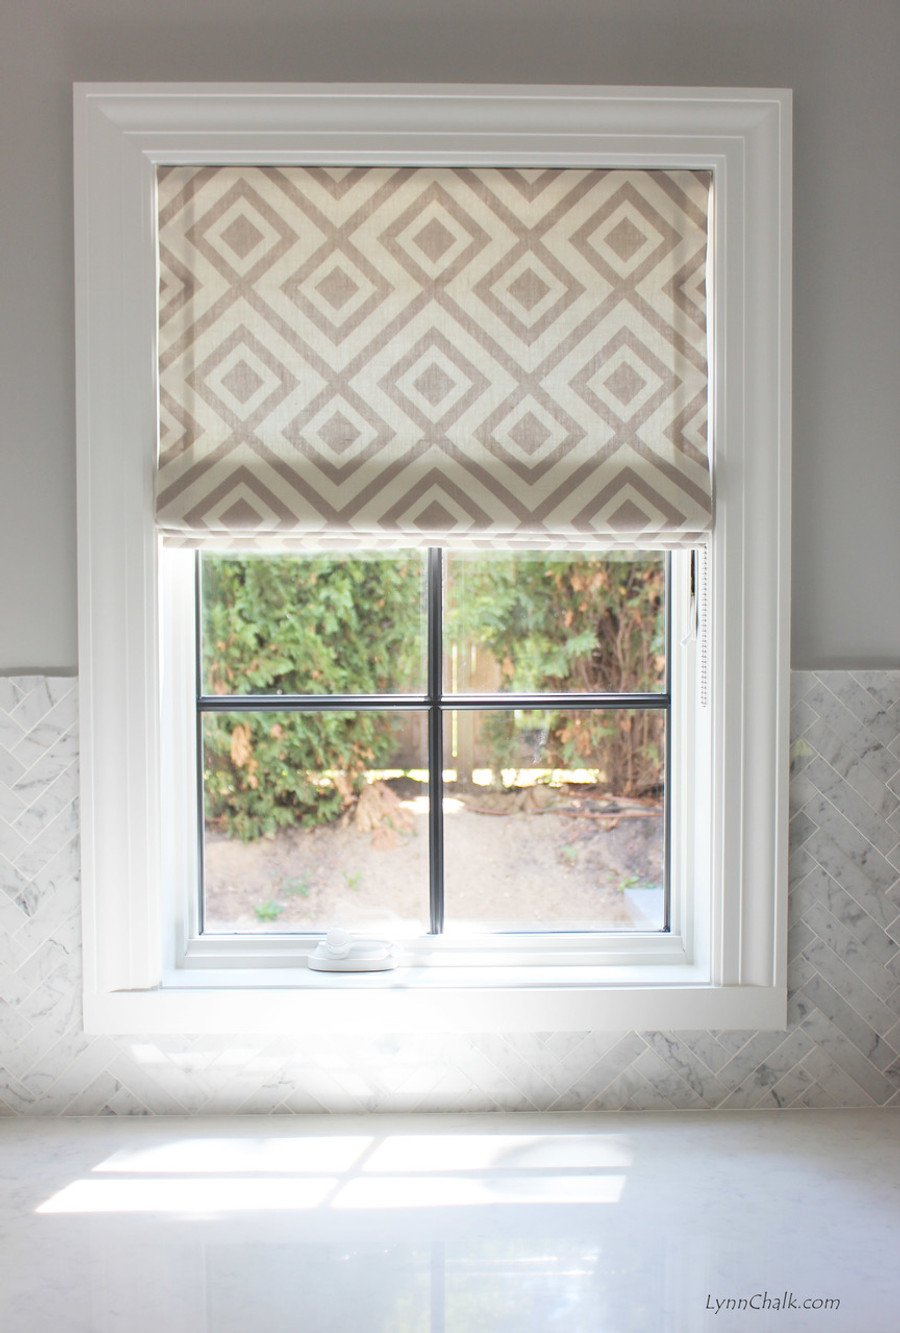 Roman Shade in La Fiorentina in Light Grey on Off White Background